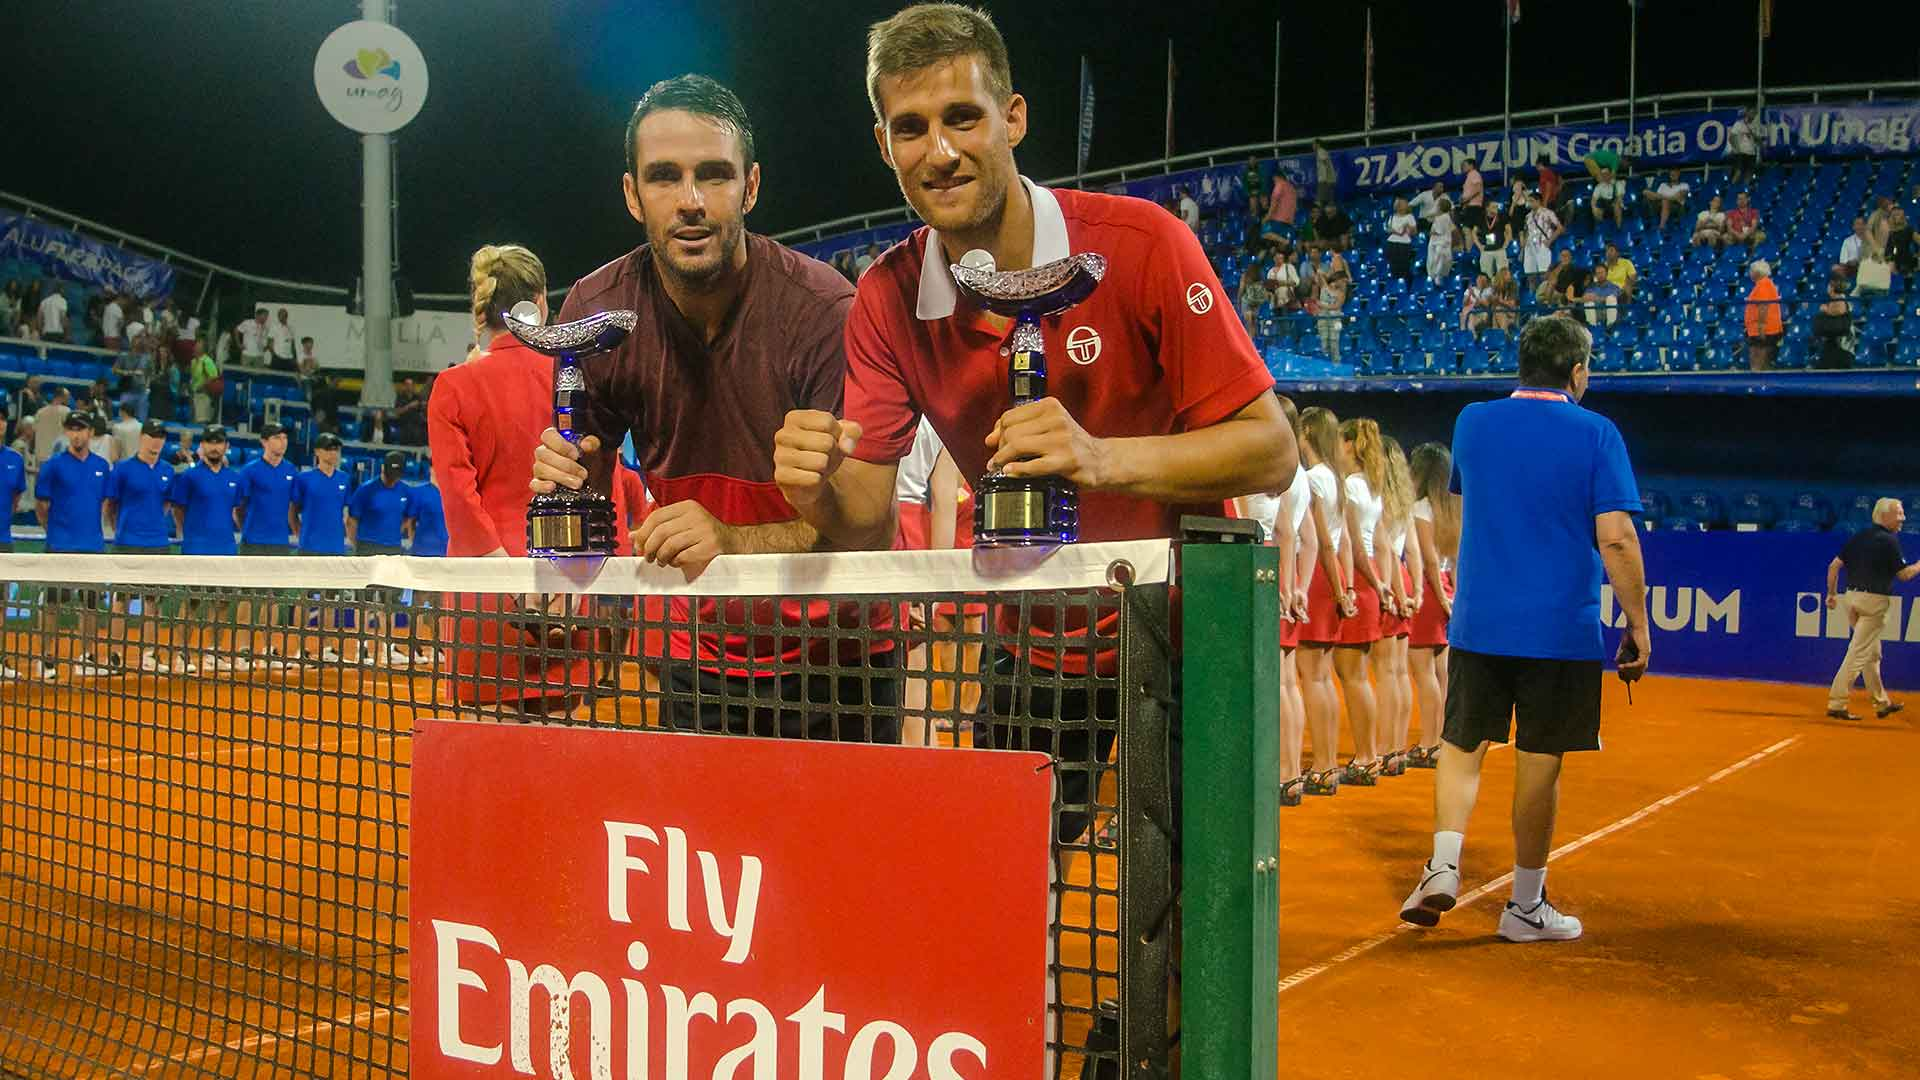 Marrero and Klizan